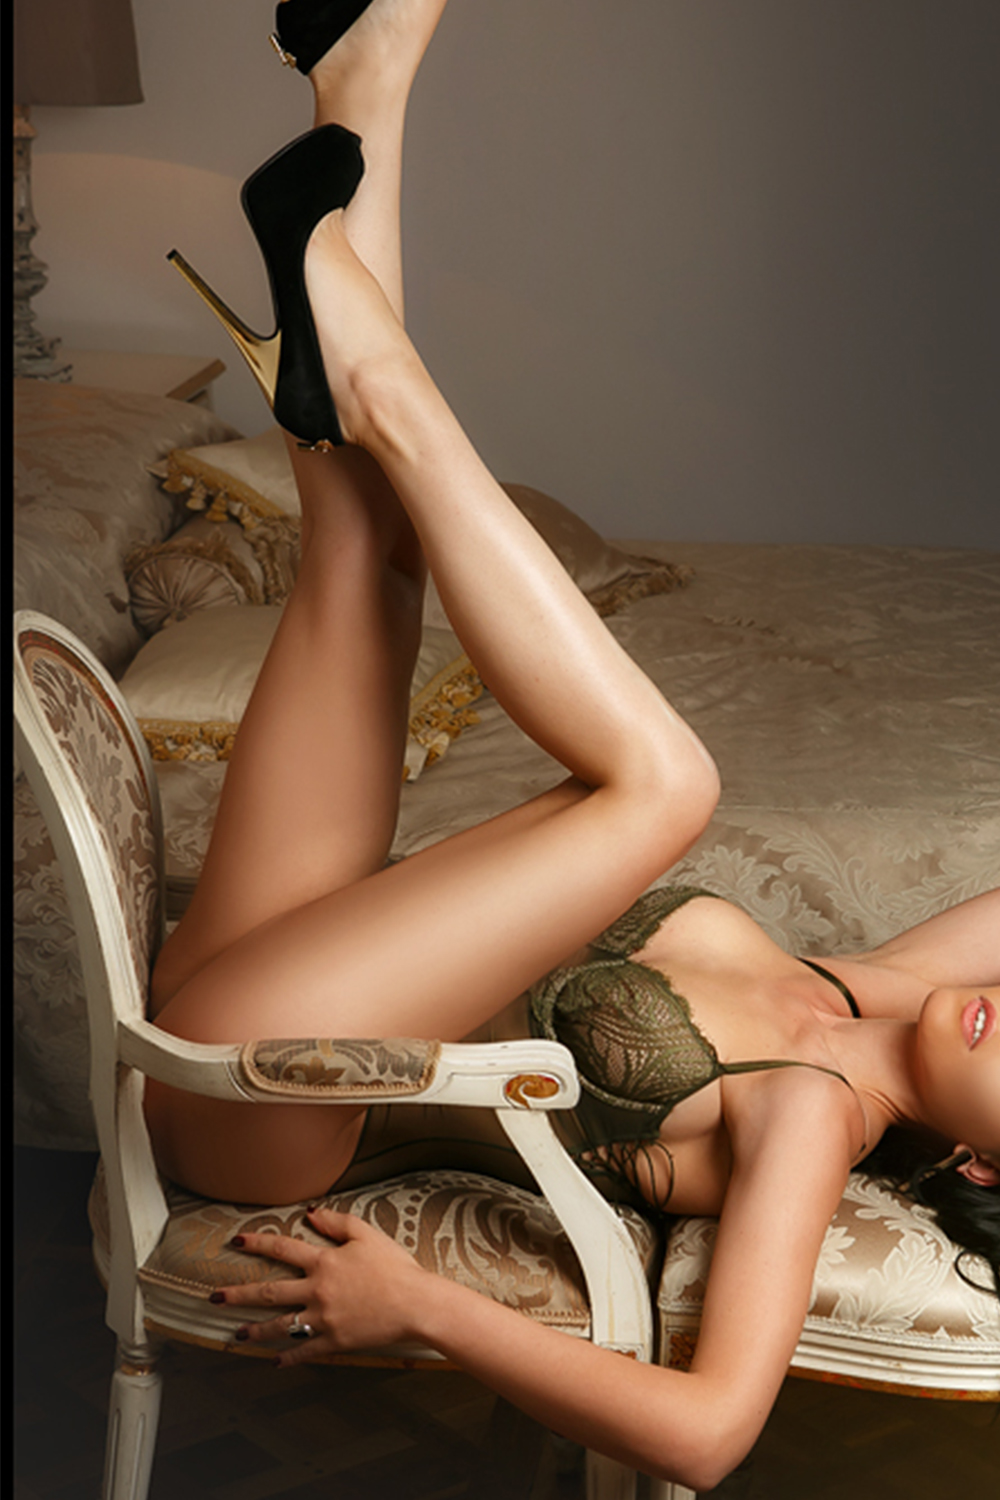 escorte sex escorte i stavanger